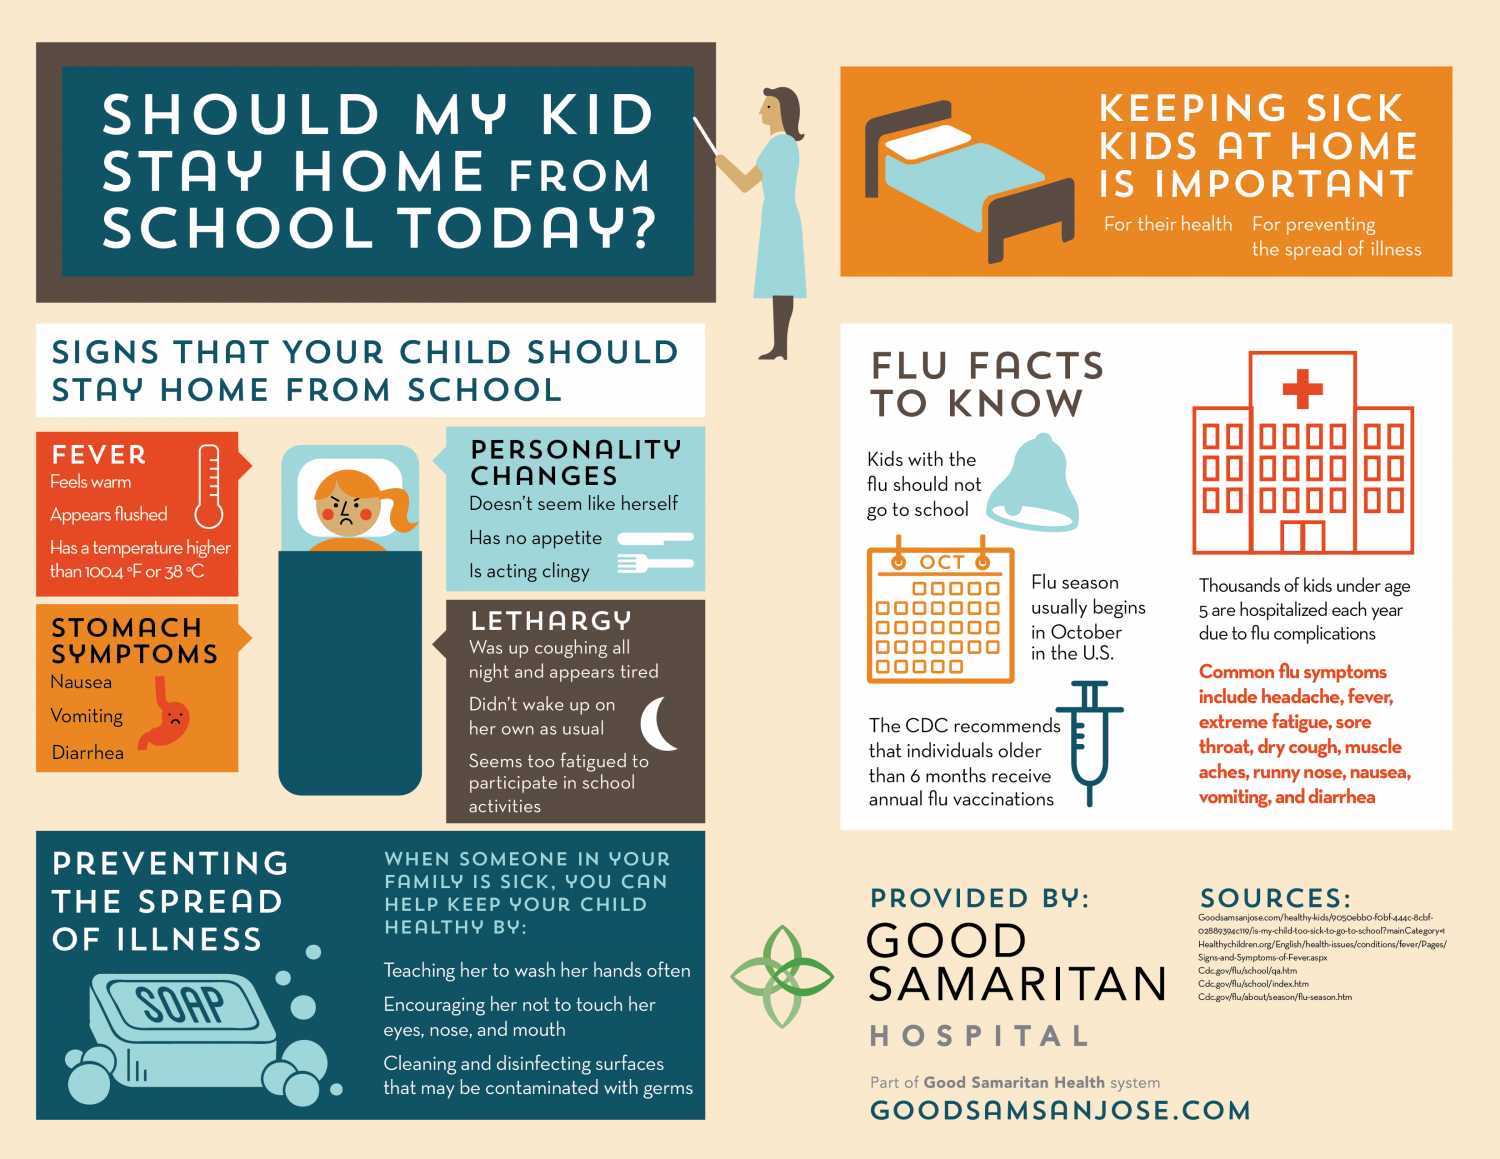 Should My Kid Stay Home From School Today? Infographic